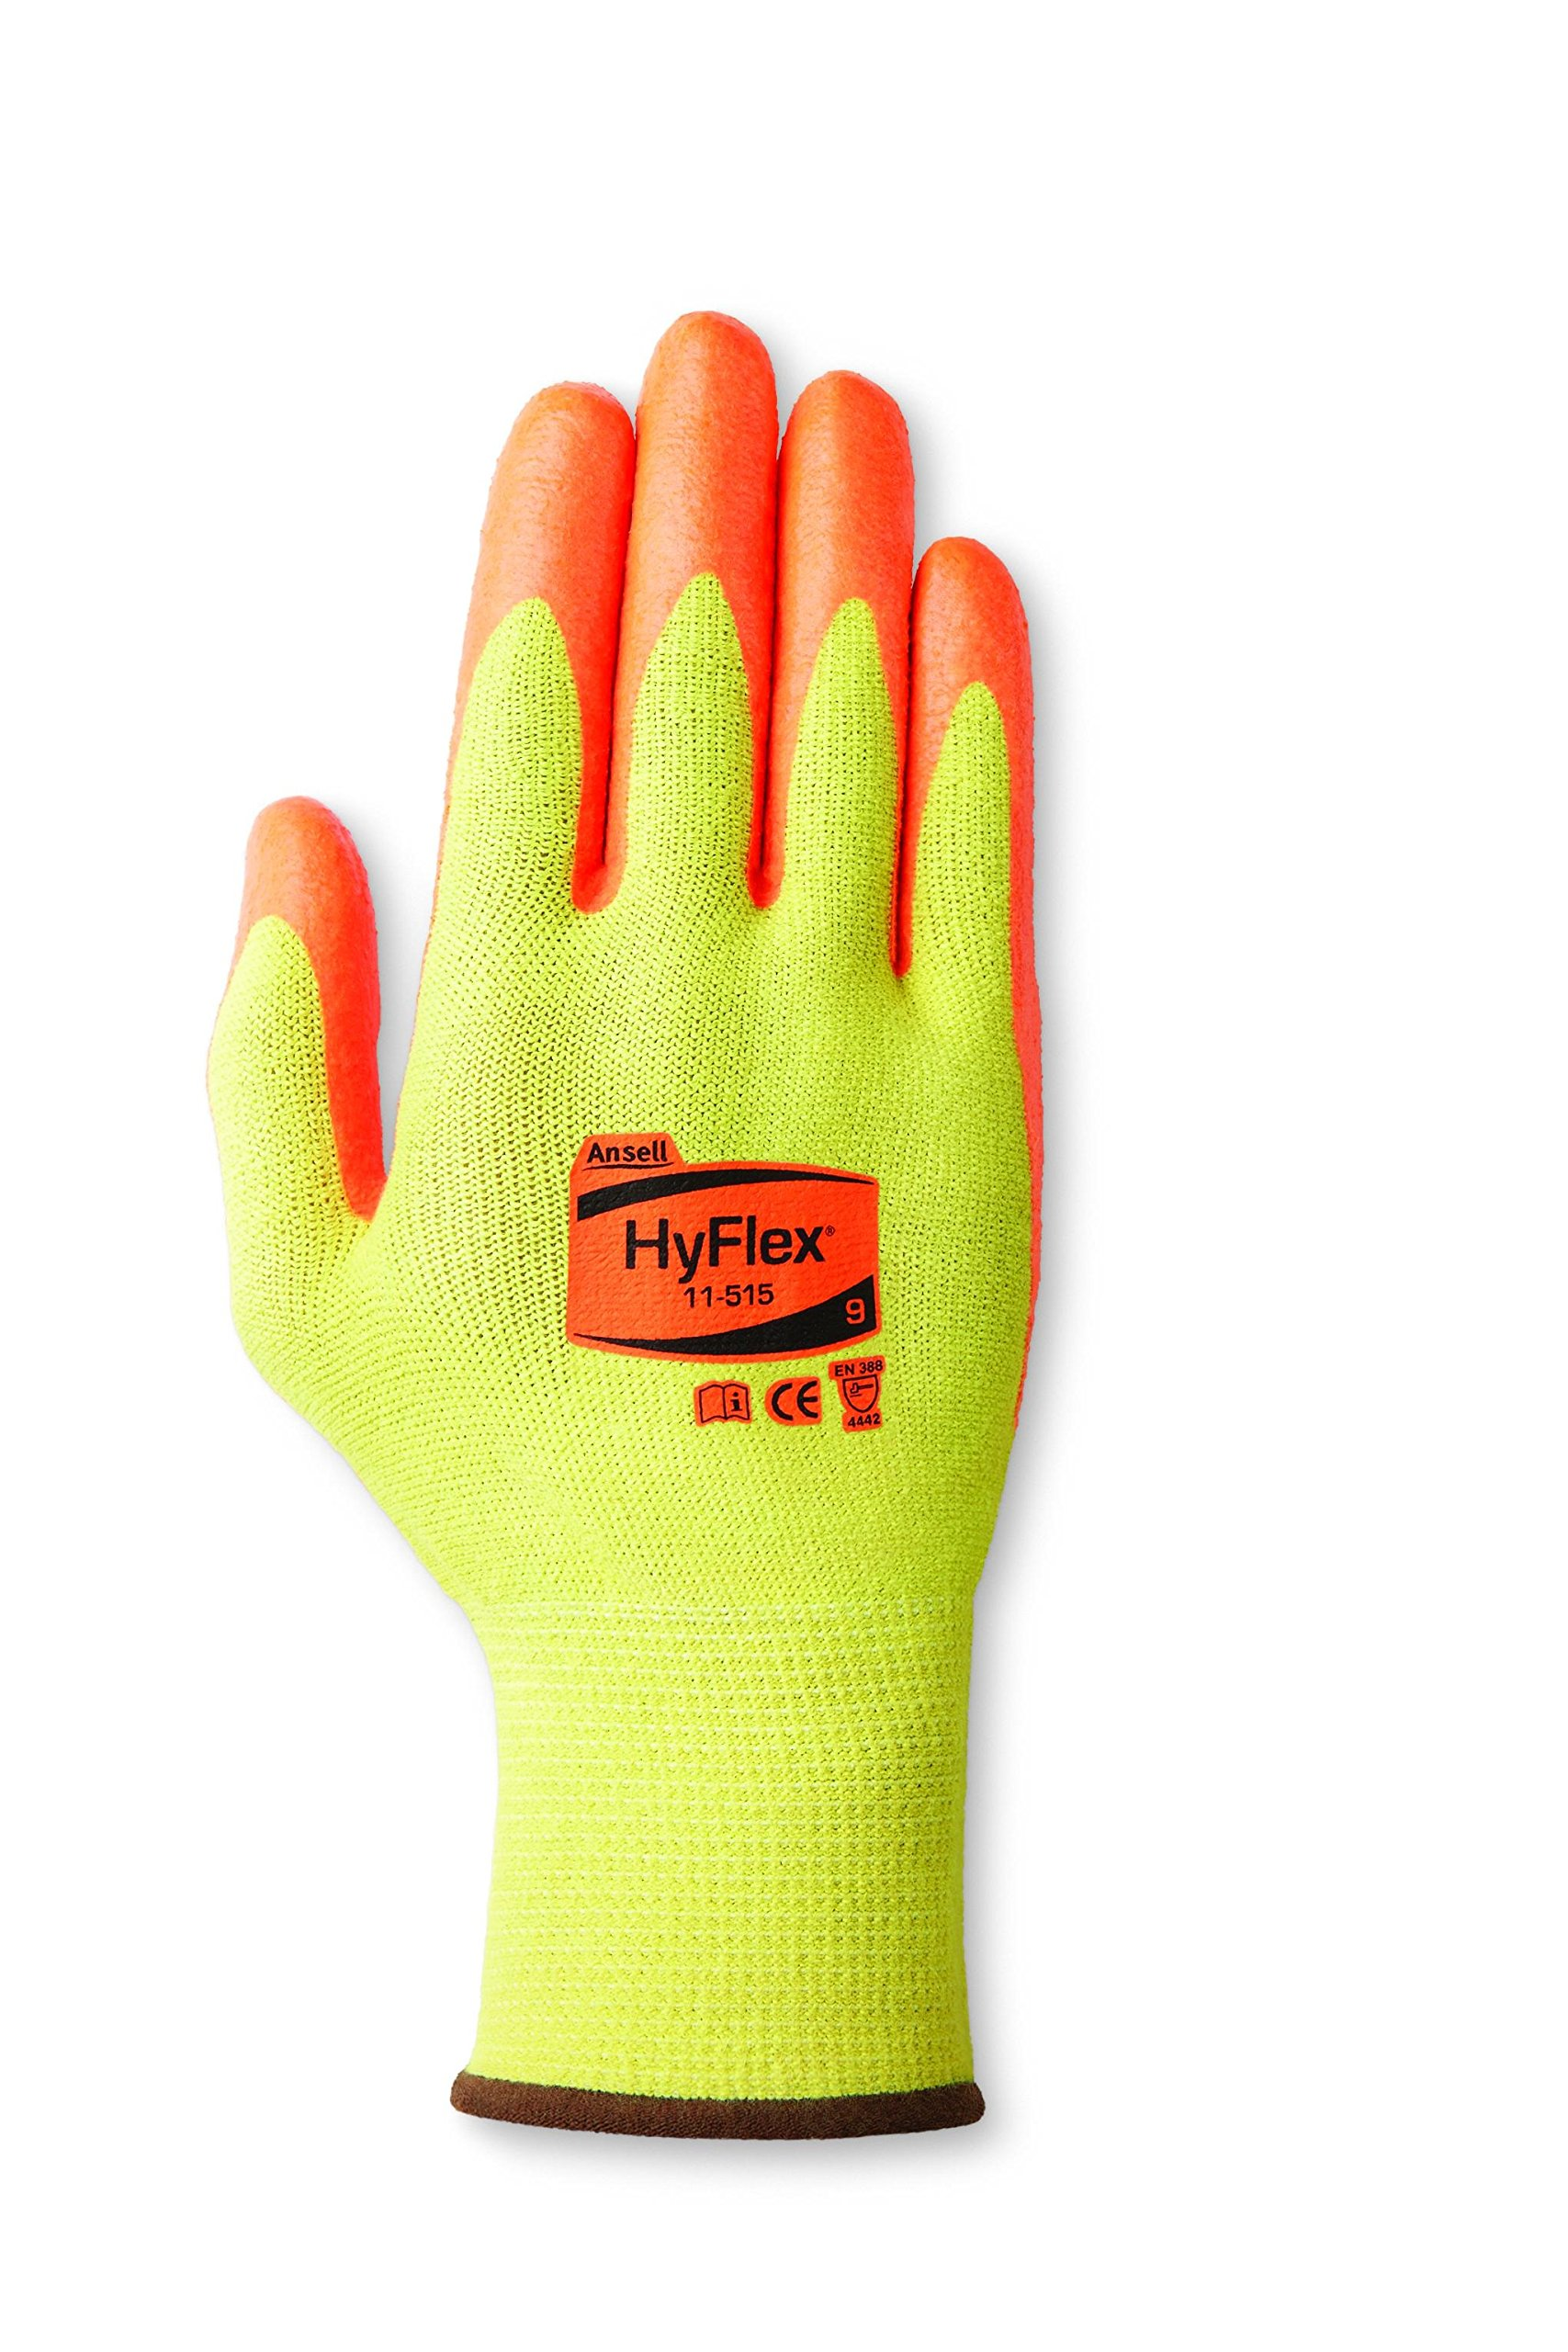 Ansell HyFlex 11-515 DuPont Kevlar Medium-Duty Cut Protection Glove with High Visibility, Abrasion/Cut Resistant, Size 7, Yellow (Pack of 12 Pair)